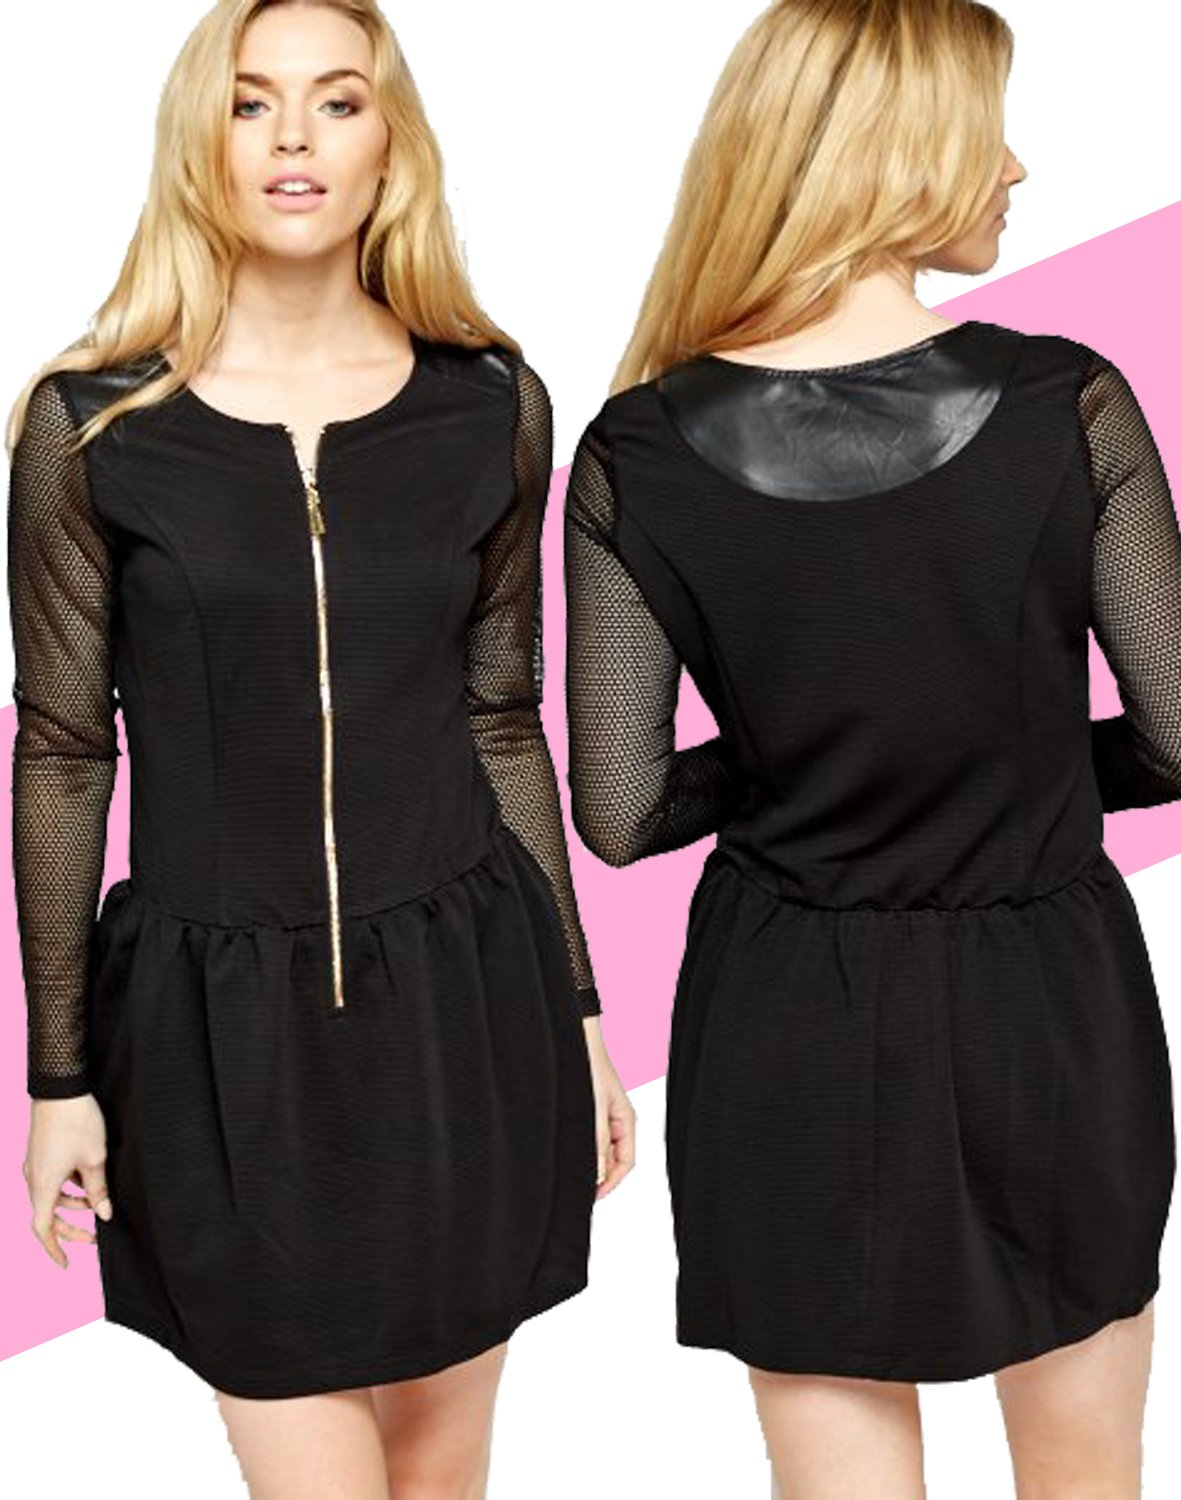 Perforated Sleeve Black Skater Dress UK Small 6-8  � FREE Worldwide Shipping �